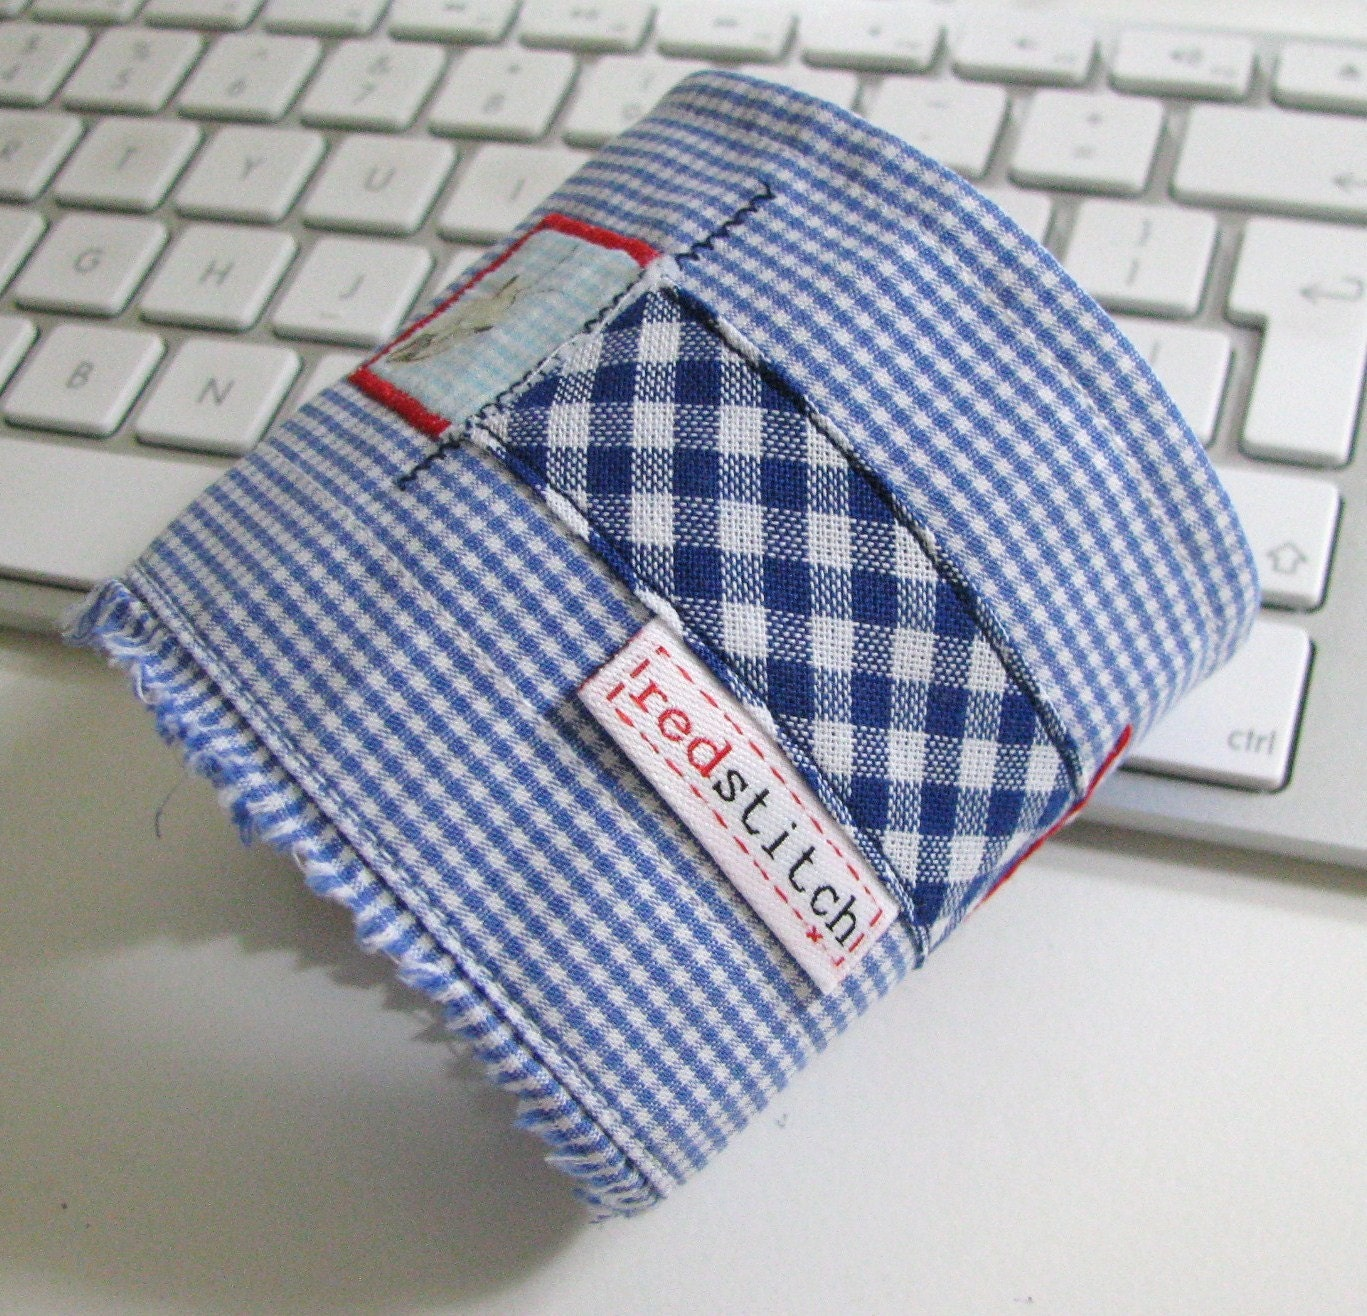 blue gingham repurposed wrist cuff made by redstitch on Etsy